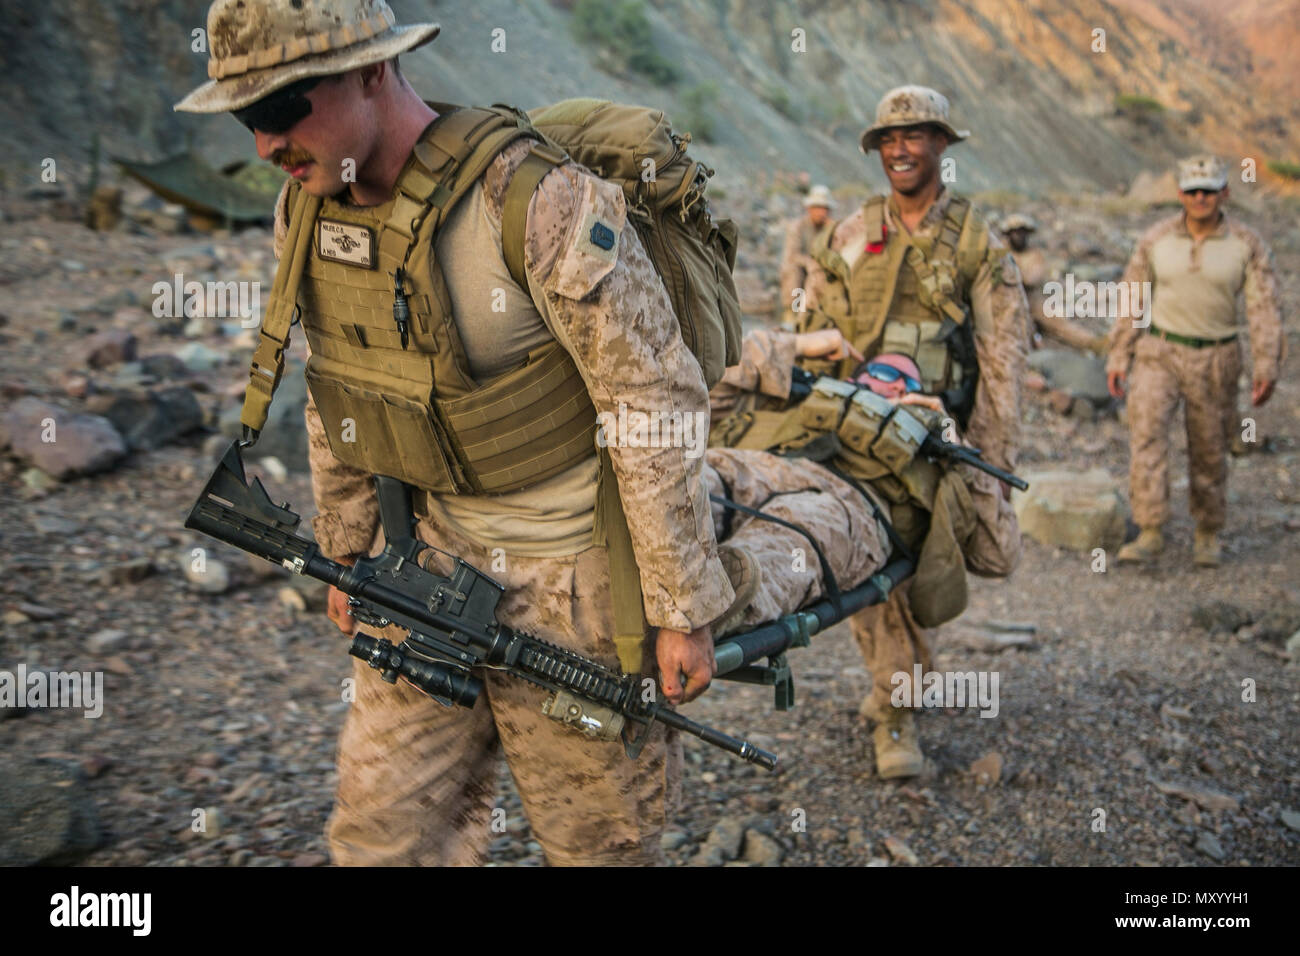 ARTA BEACH, DJIBOUTI (Dec. 12, 2016) U.S. Navy Seaman Marcus Salceda and Petty Officer 3rd Class Charles Niles, hospital corpsmen with Battalion Landing Team 1st Bn., 4th Marines, 11th Marine Expeditionary Unit (MEU), carry a role-playing patient via litter to a casualty collection point while conducting tourniquet drills during Exercise Alligator Dagger, Dec. 12. Secondary medical assessments are conducted on injured personal at casualty collection points: splinting closed fractures, bandaging lacerations, or applying tourniquets to open hemorrhages.   The unilateral exercise provides an oppo - Stock Image